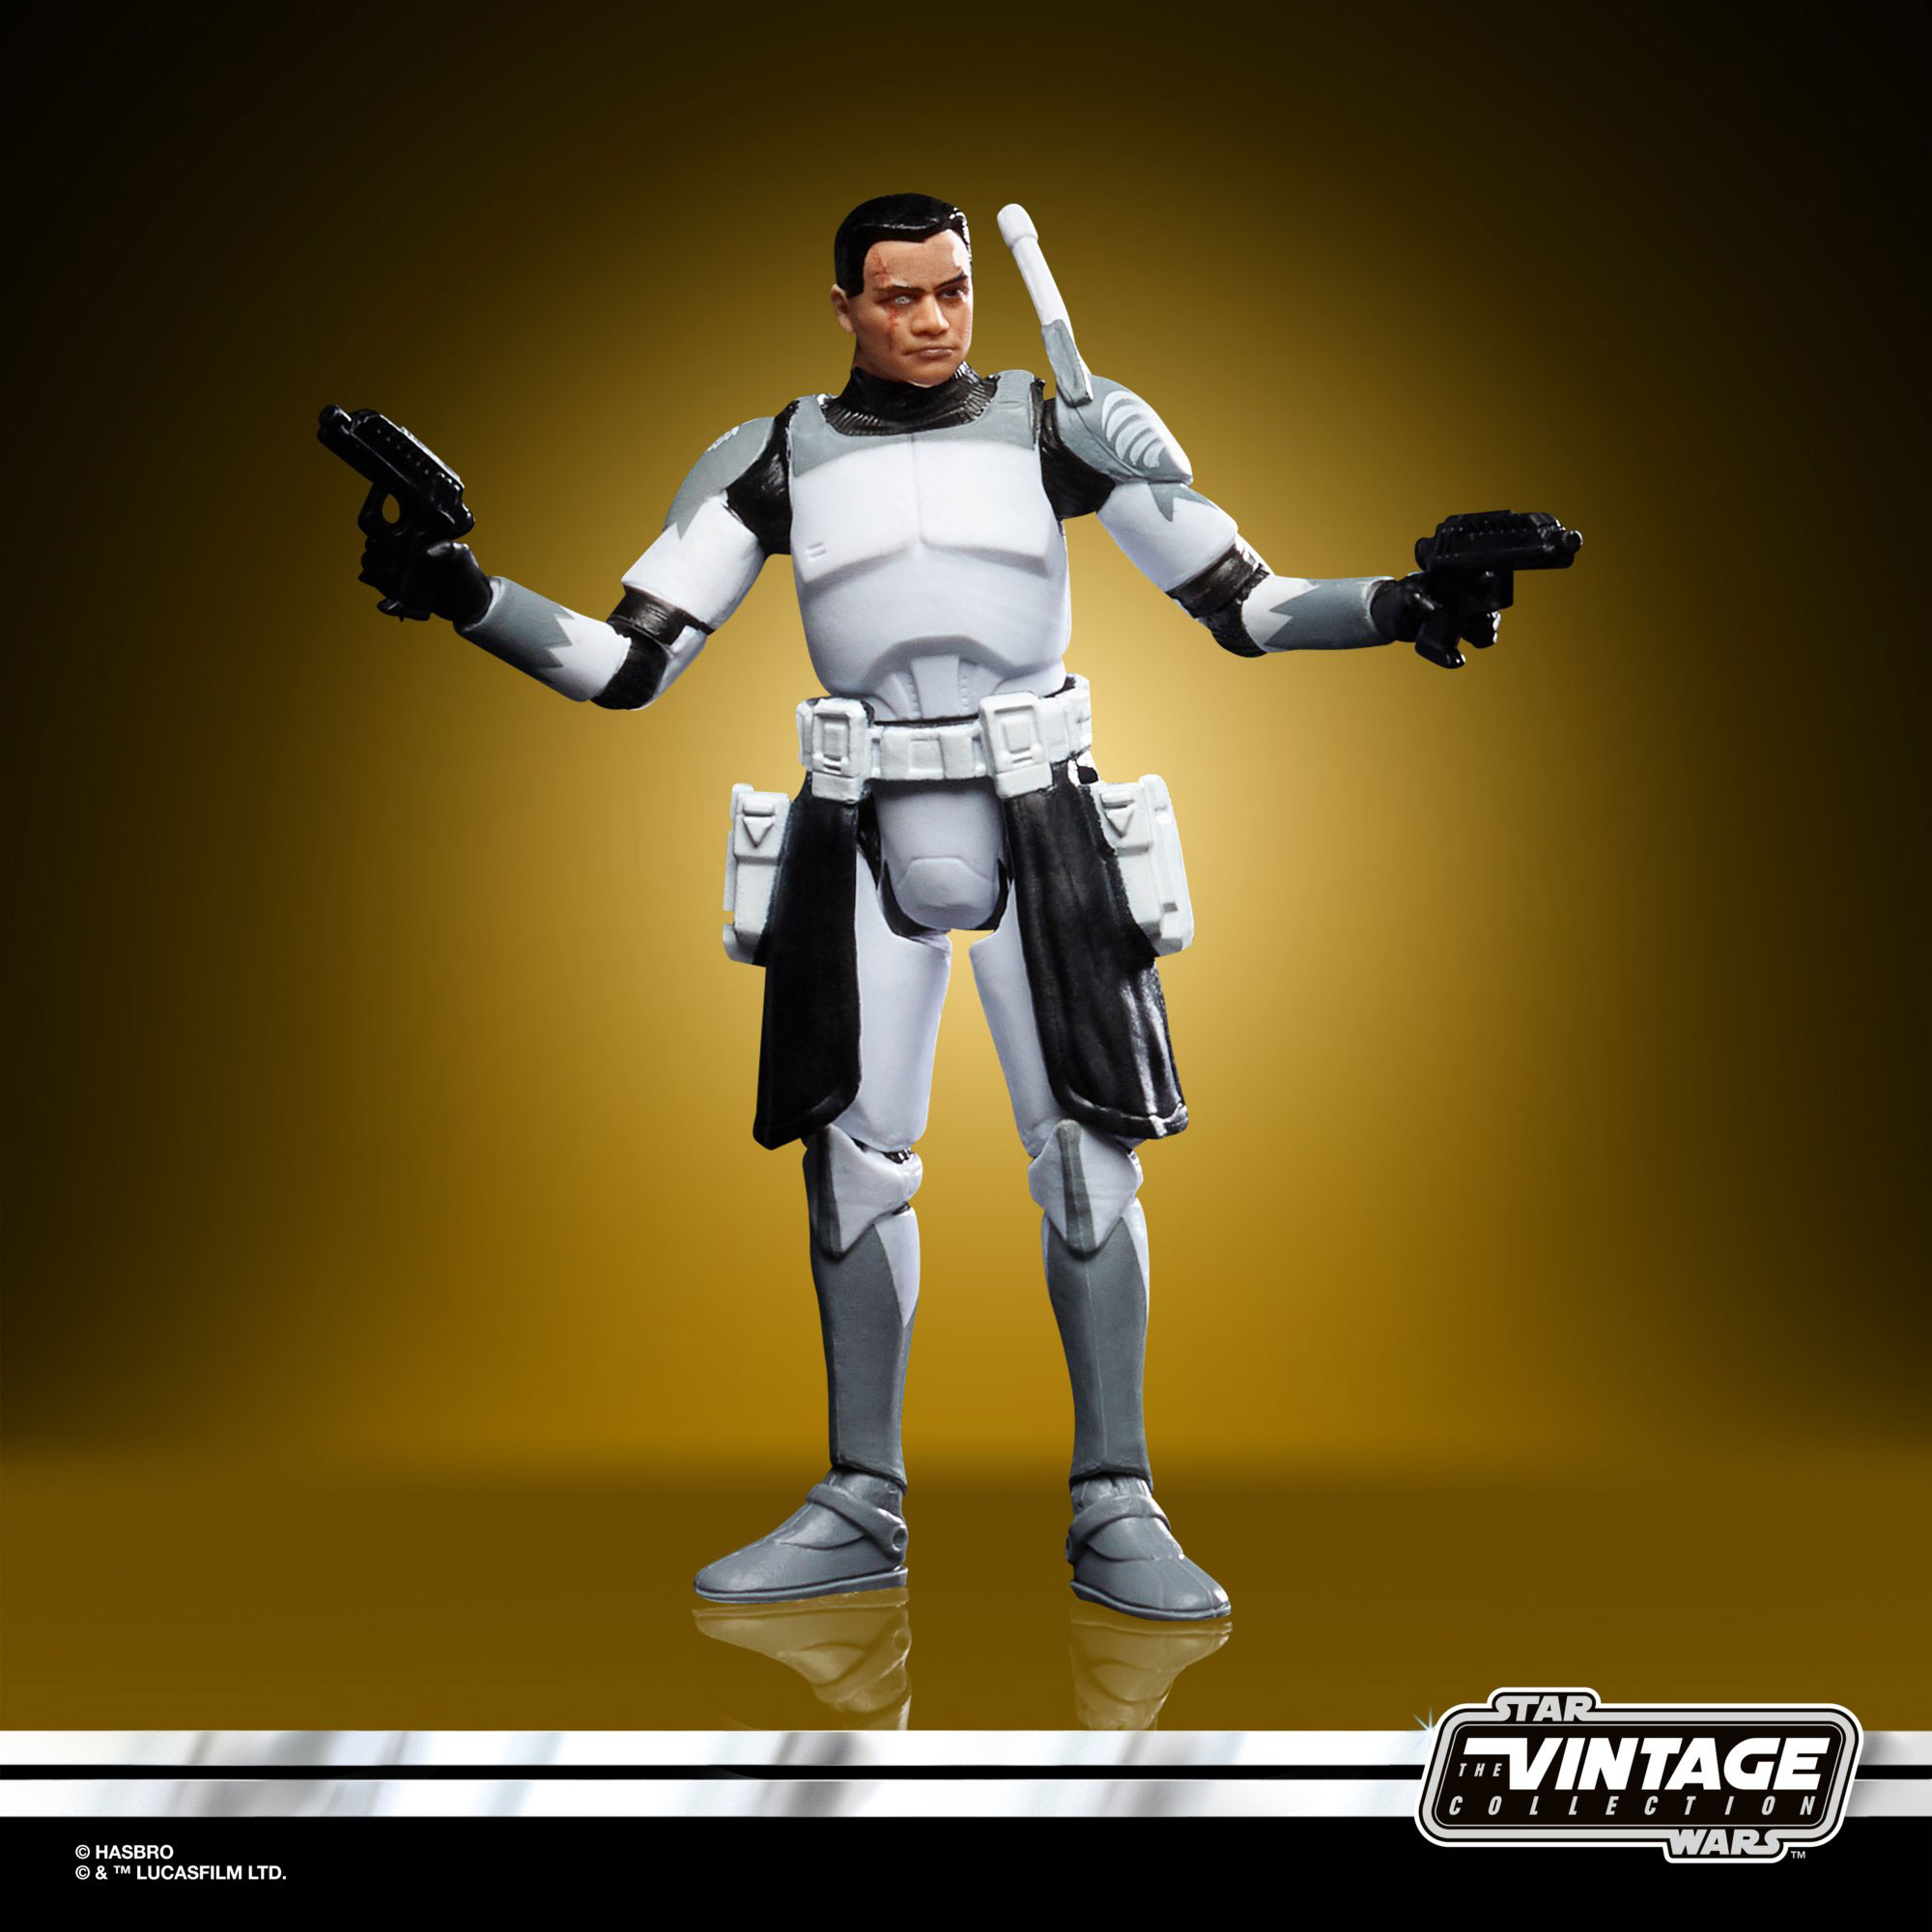 star-wars-the-vintage-collection-clone-commander-wolffe-action-figure-2